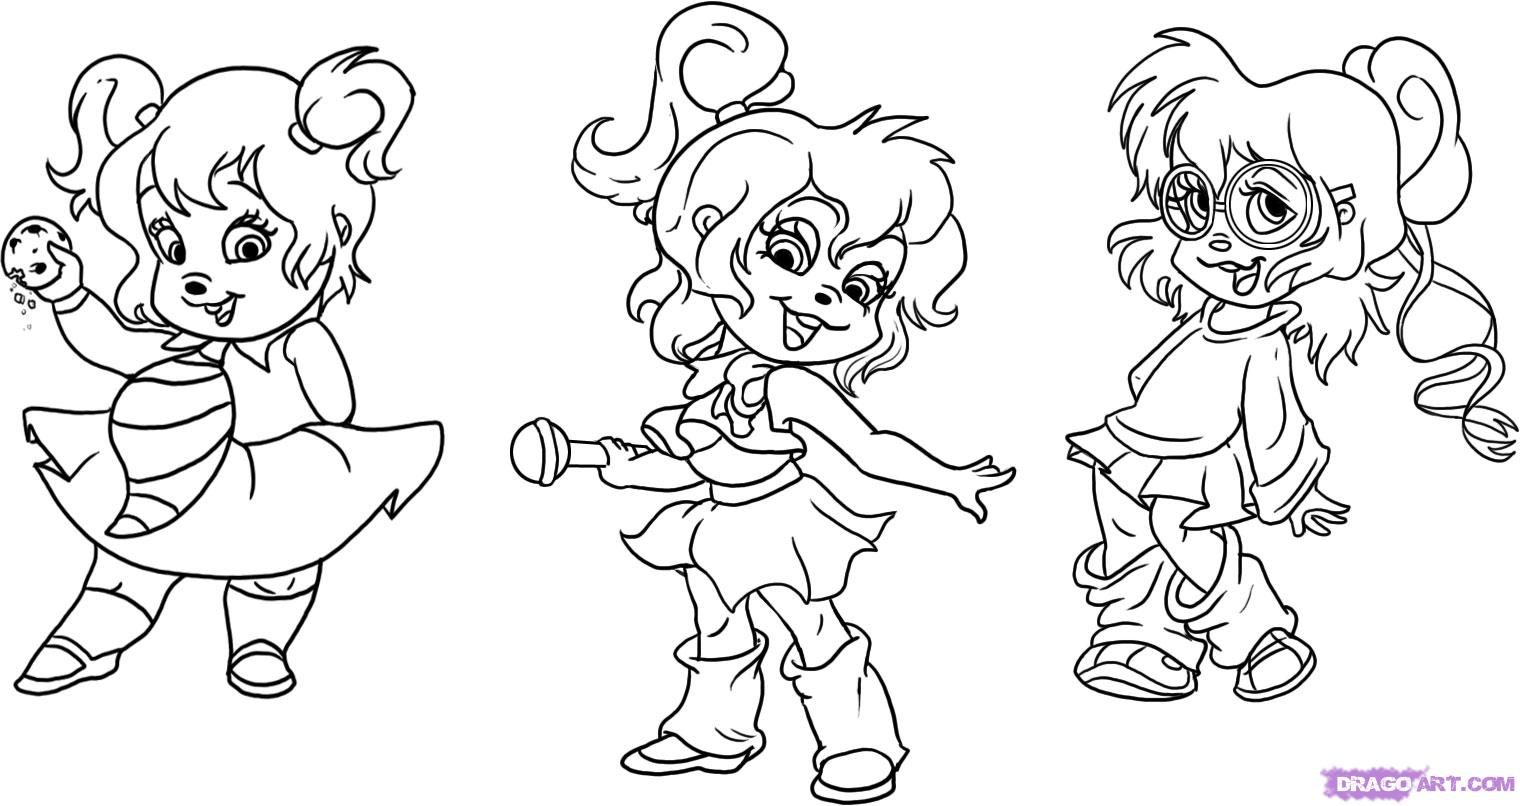 chipmunks and chipettes coloring pages chipmunk rapper oopsy daisy - Alvin And The Chipmunks Pictures To Colour